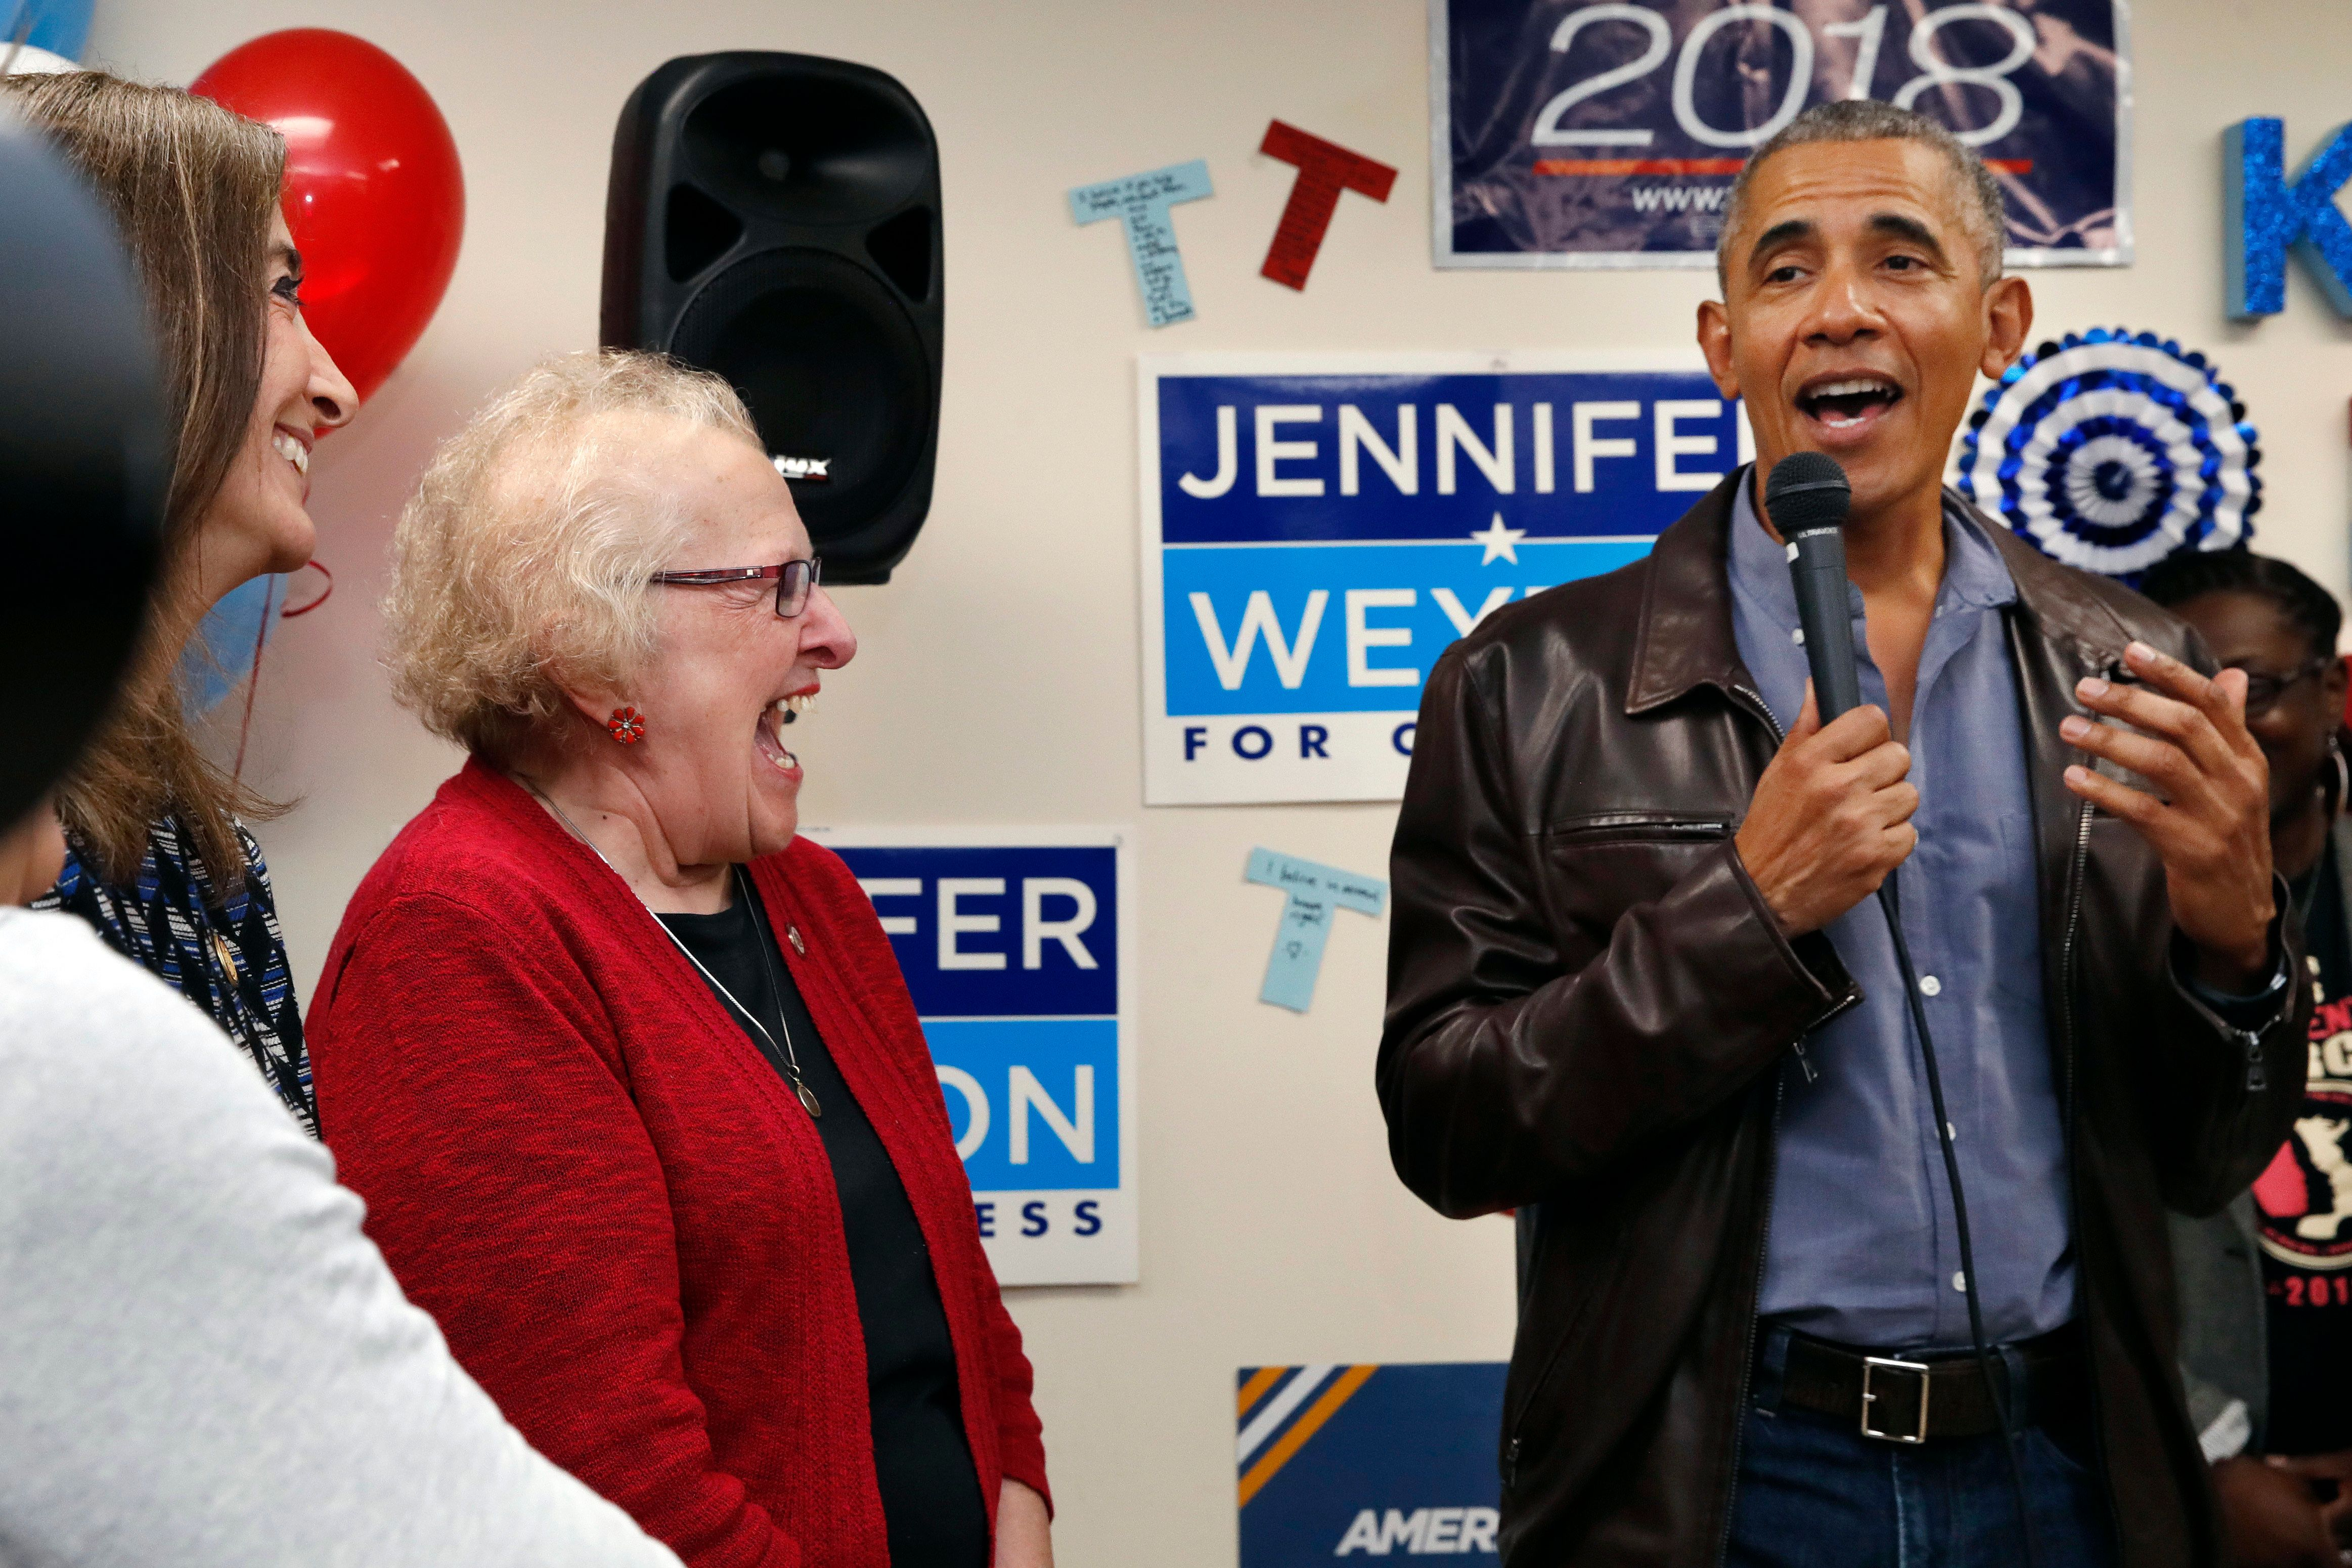 Democratic campaign volunteers react as former President Barack Obama, right, speaks during a surprise visit with Sen. Tim Kaine, D-Va., in Fairfax Station, Va., on Monday, Nov. 5, 2018. (AP Photo/Jacquelyn Martin)